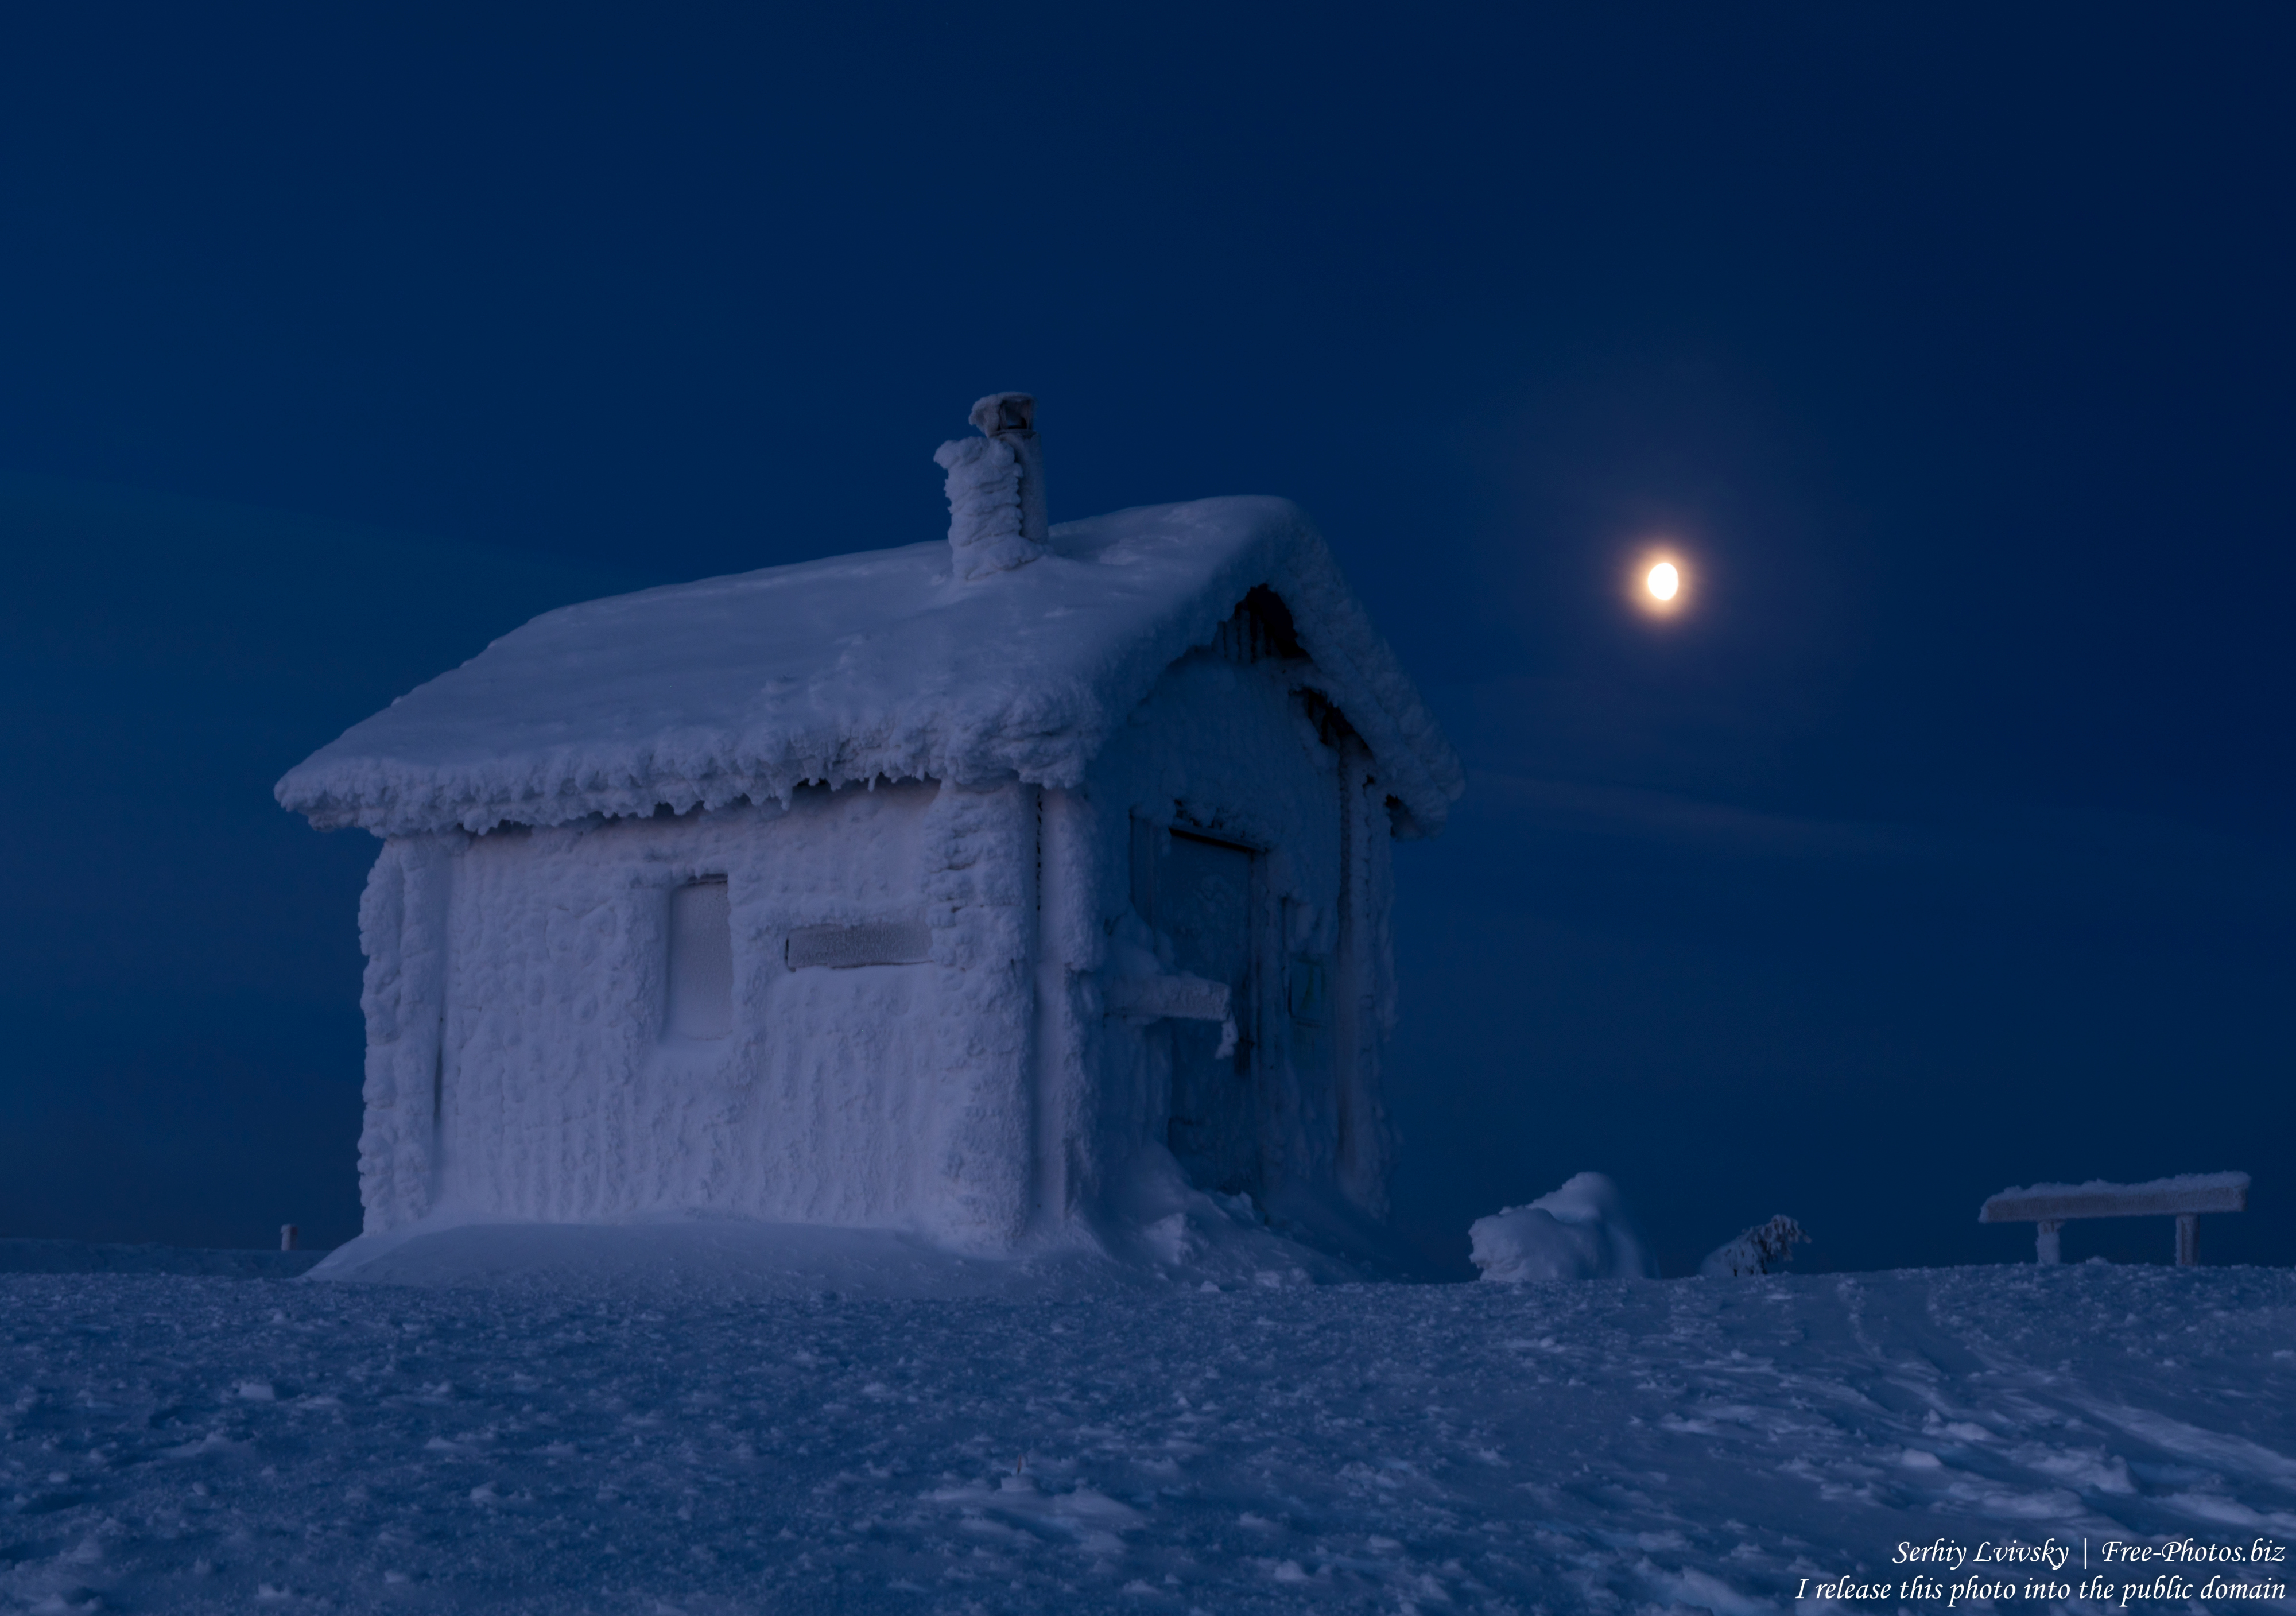 valtavaara_finland_photographed_in_january_2020_by_serhiy_lvivsky_40